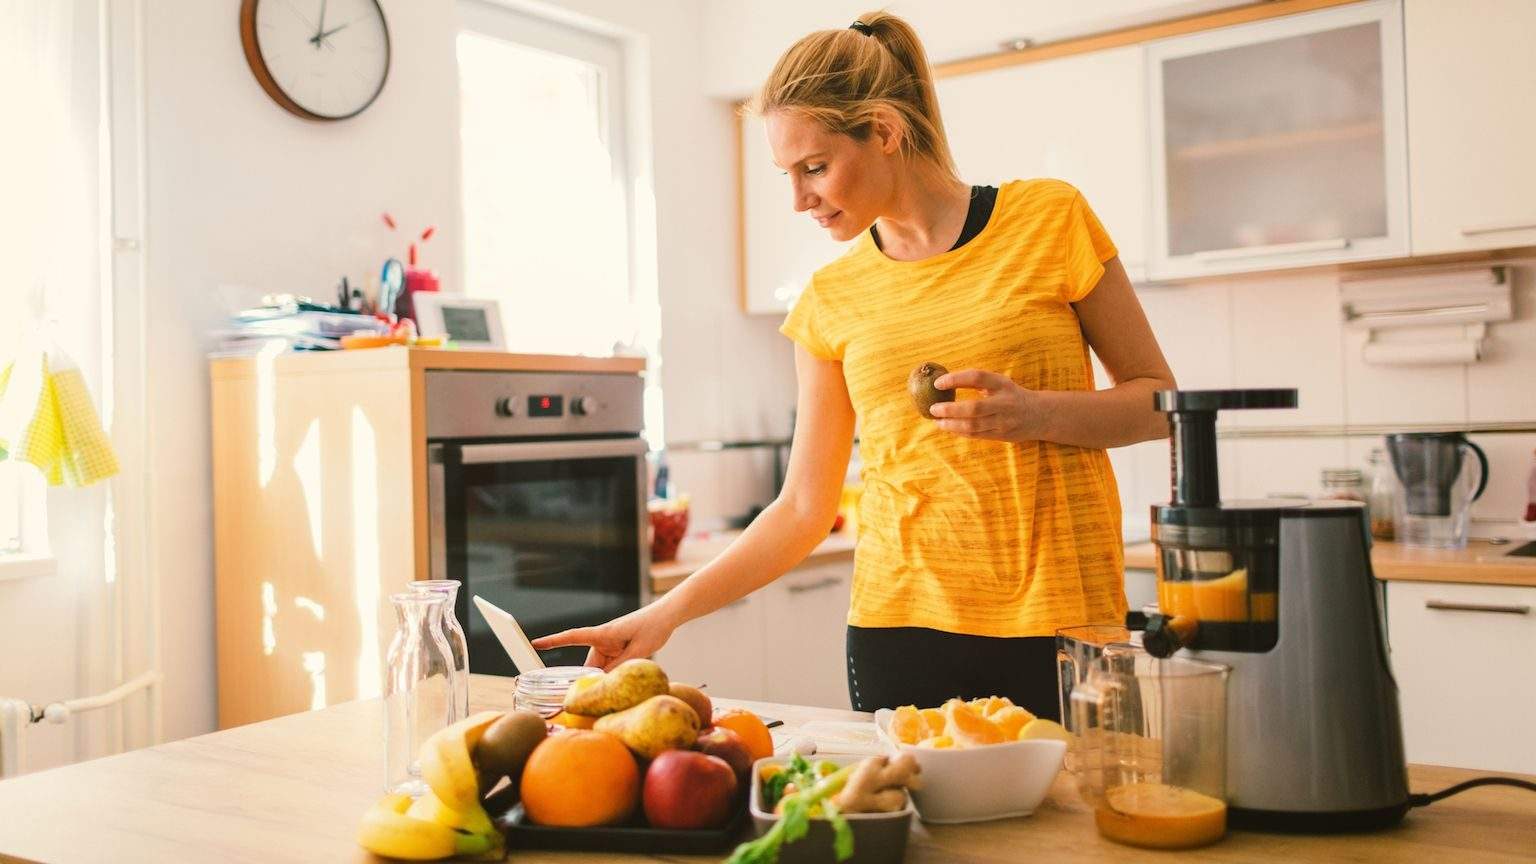 Woman using a juicer in her kitchen while looking at a recipe on her laptop